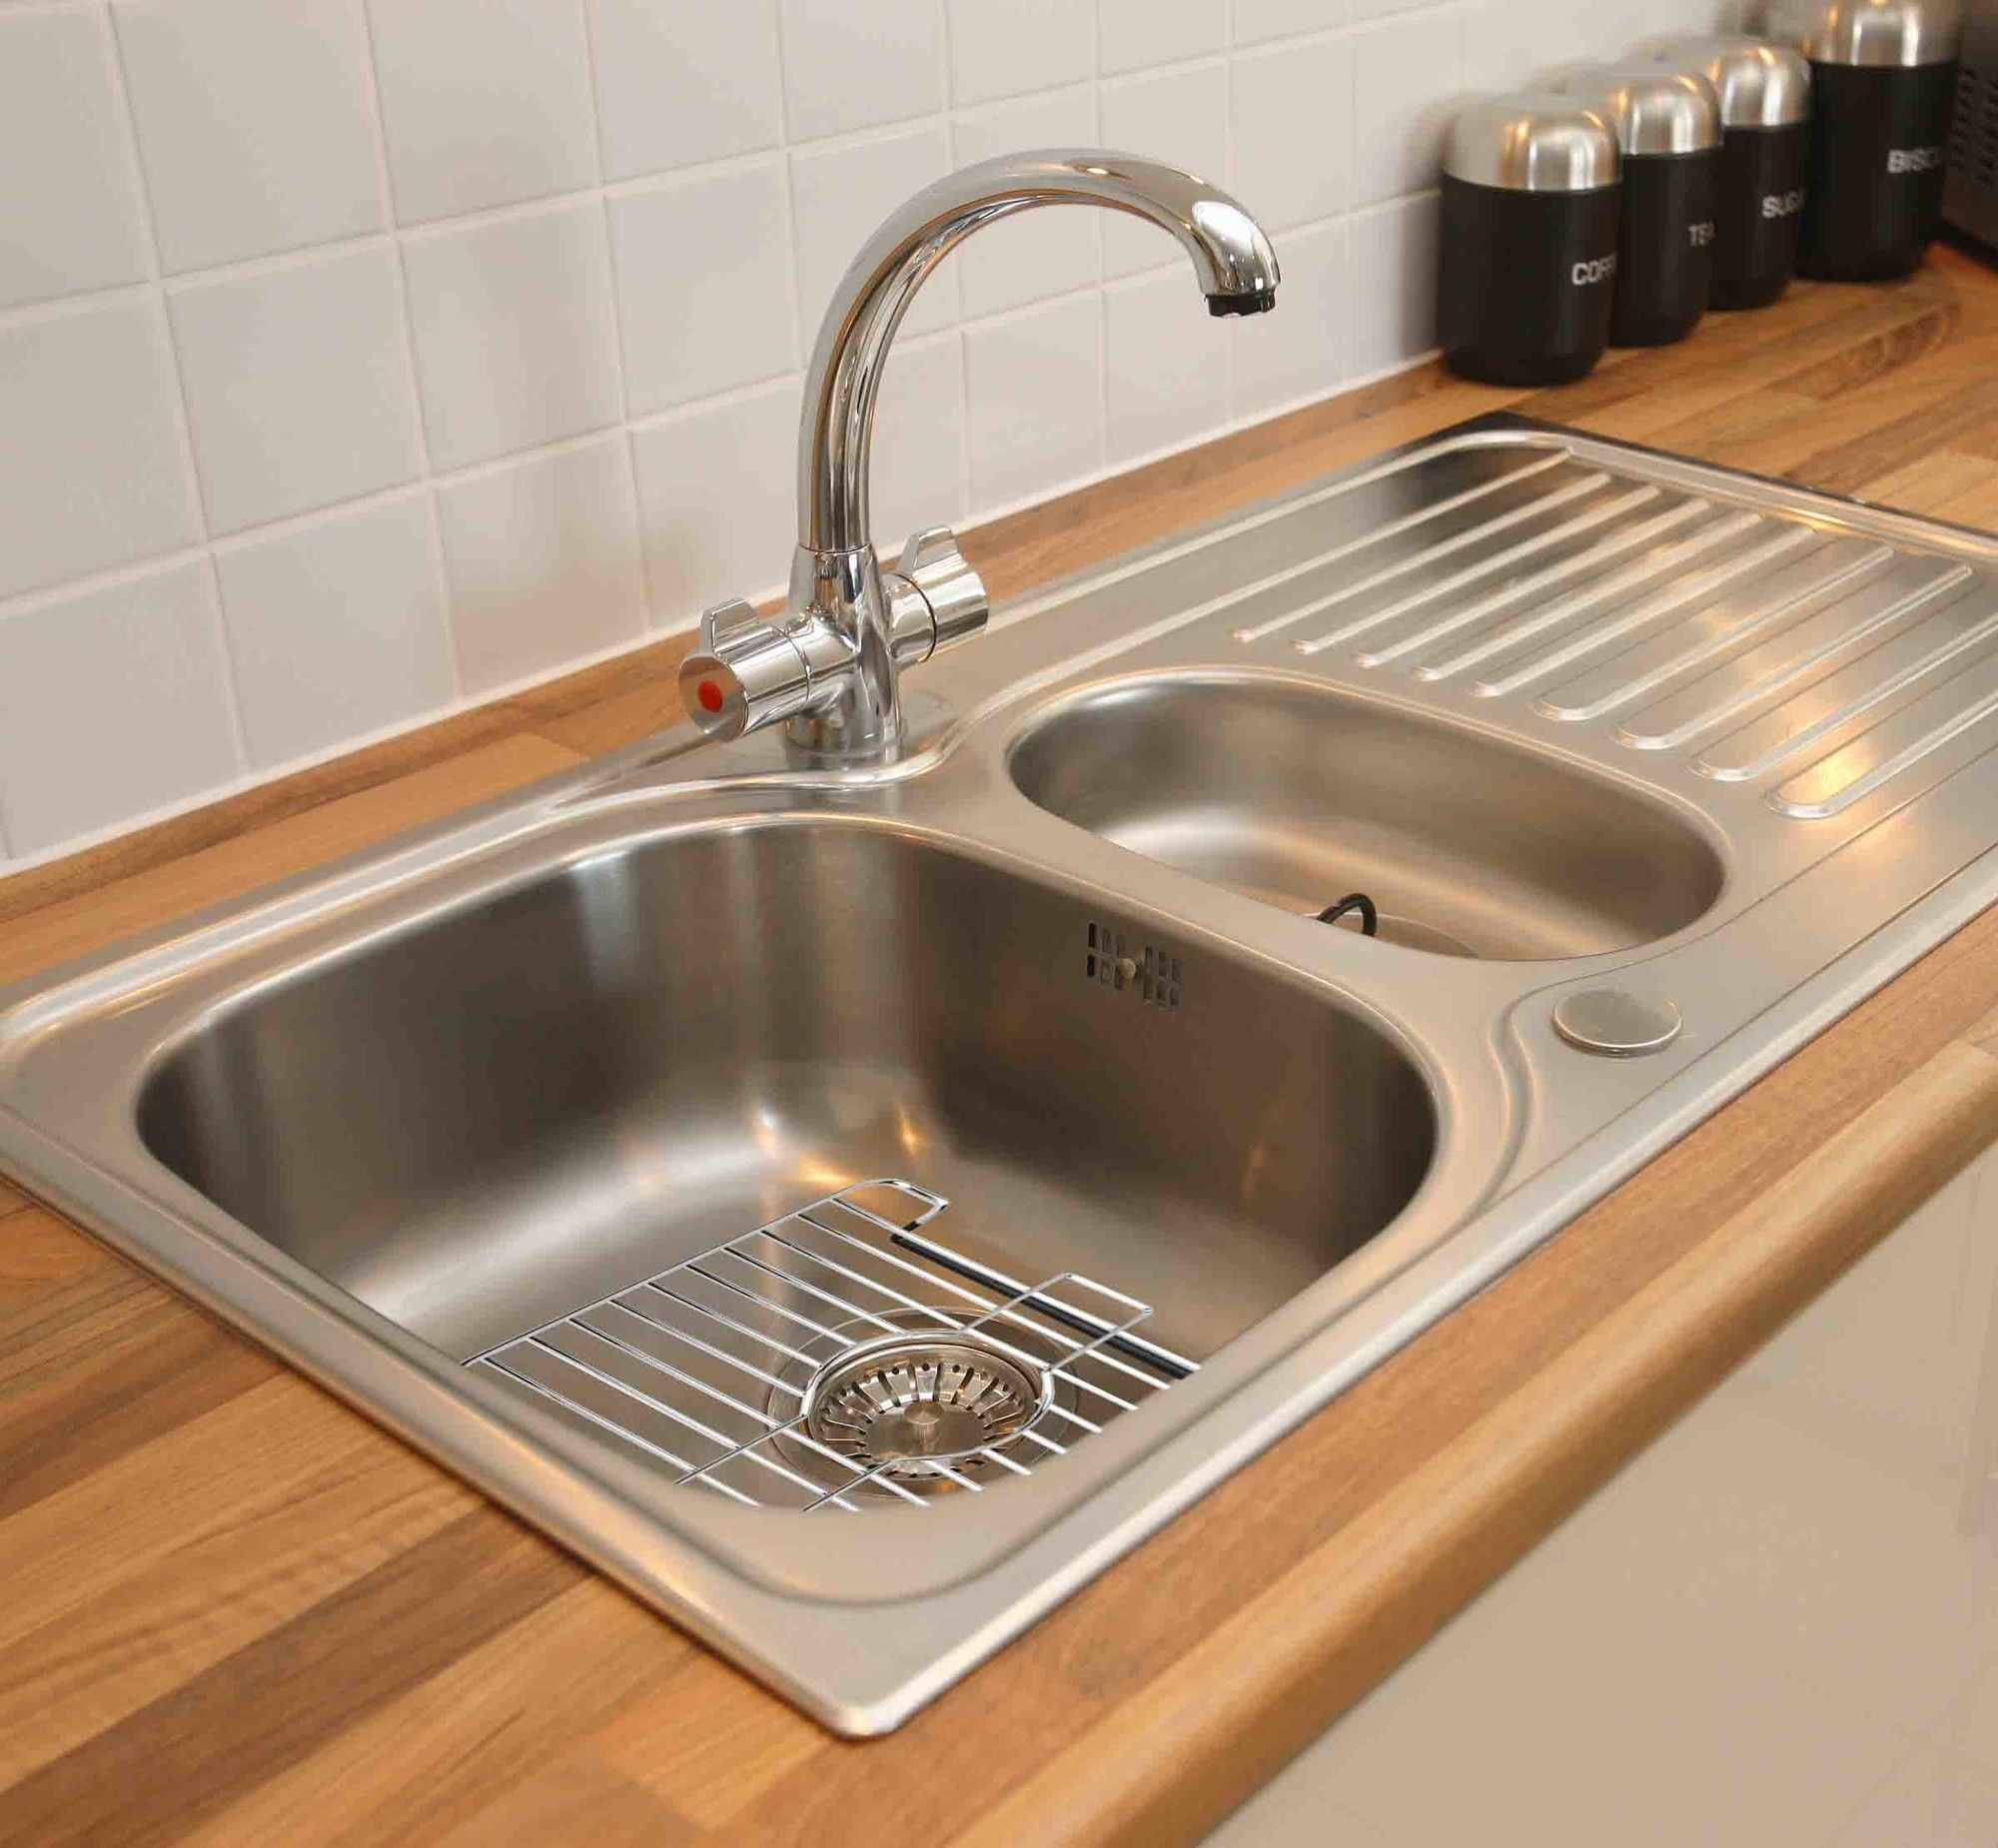 13 25 X 10 5 Protector Kitchen Sink Products Kitchen